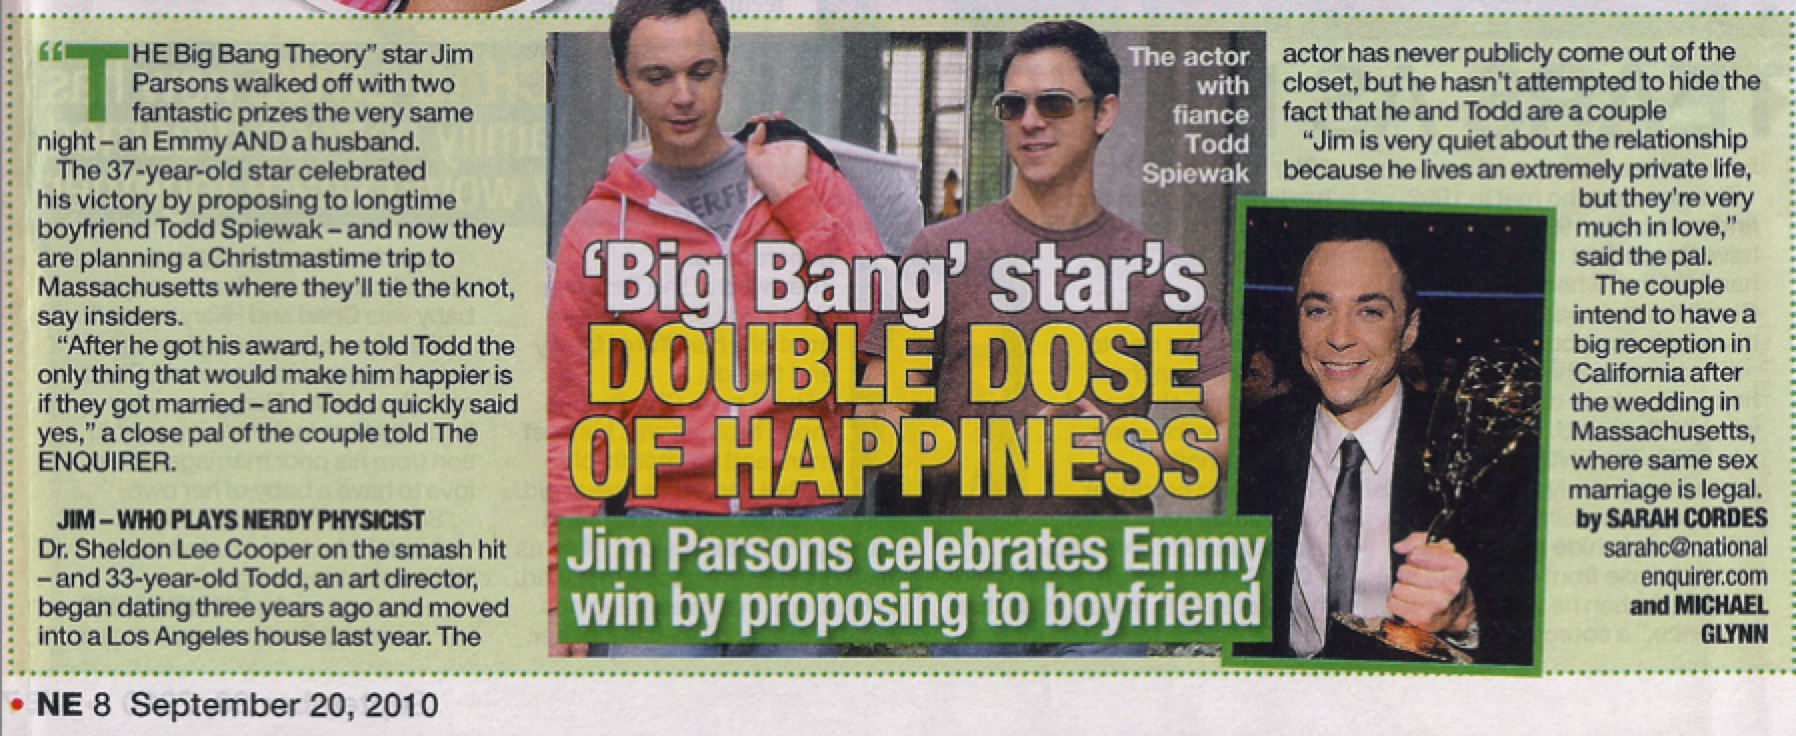 Big Bang Theory's Jim Parsons Is Engaged! To Boyfriend